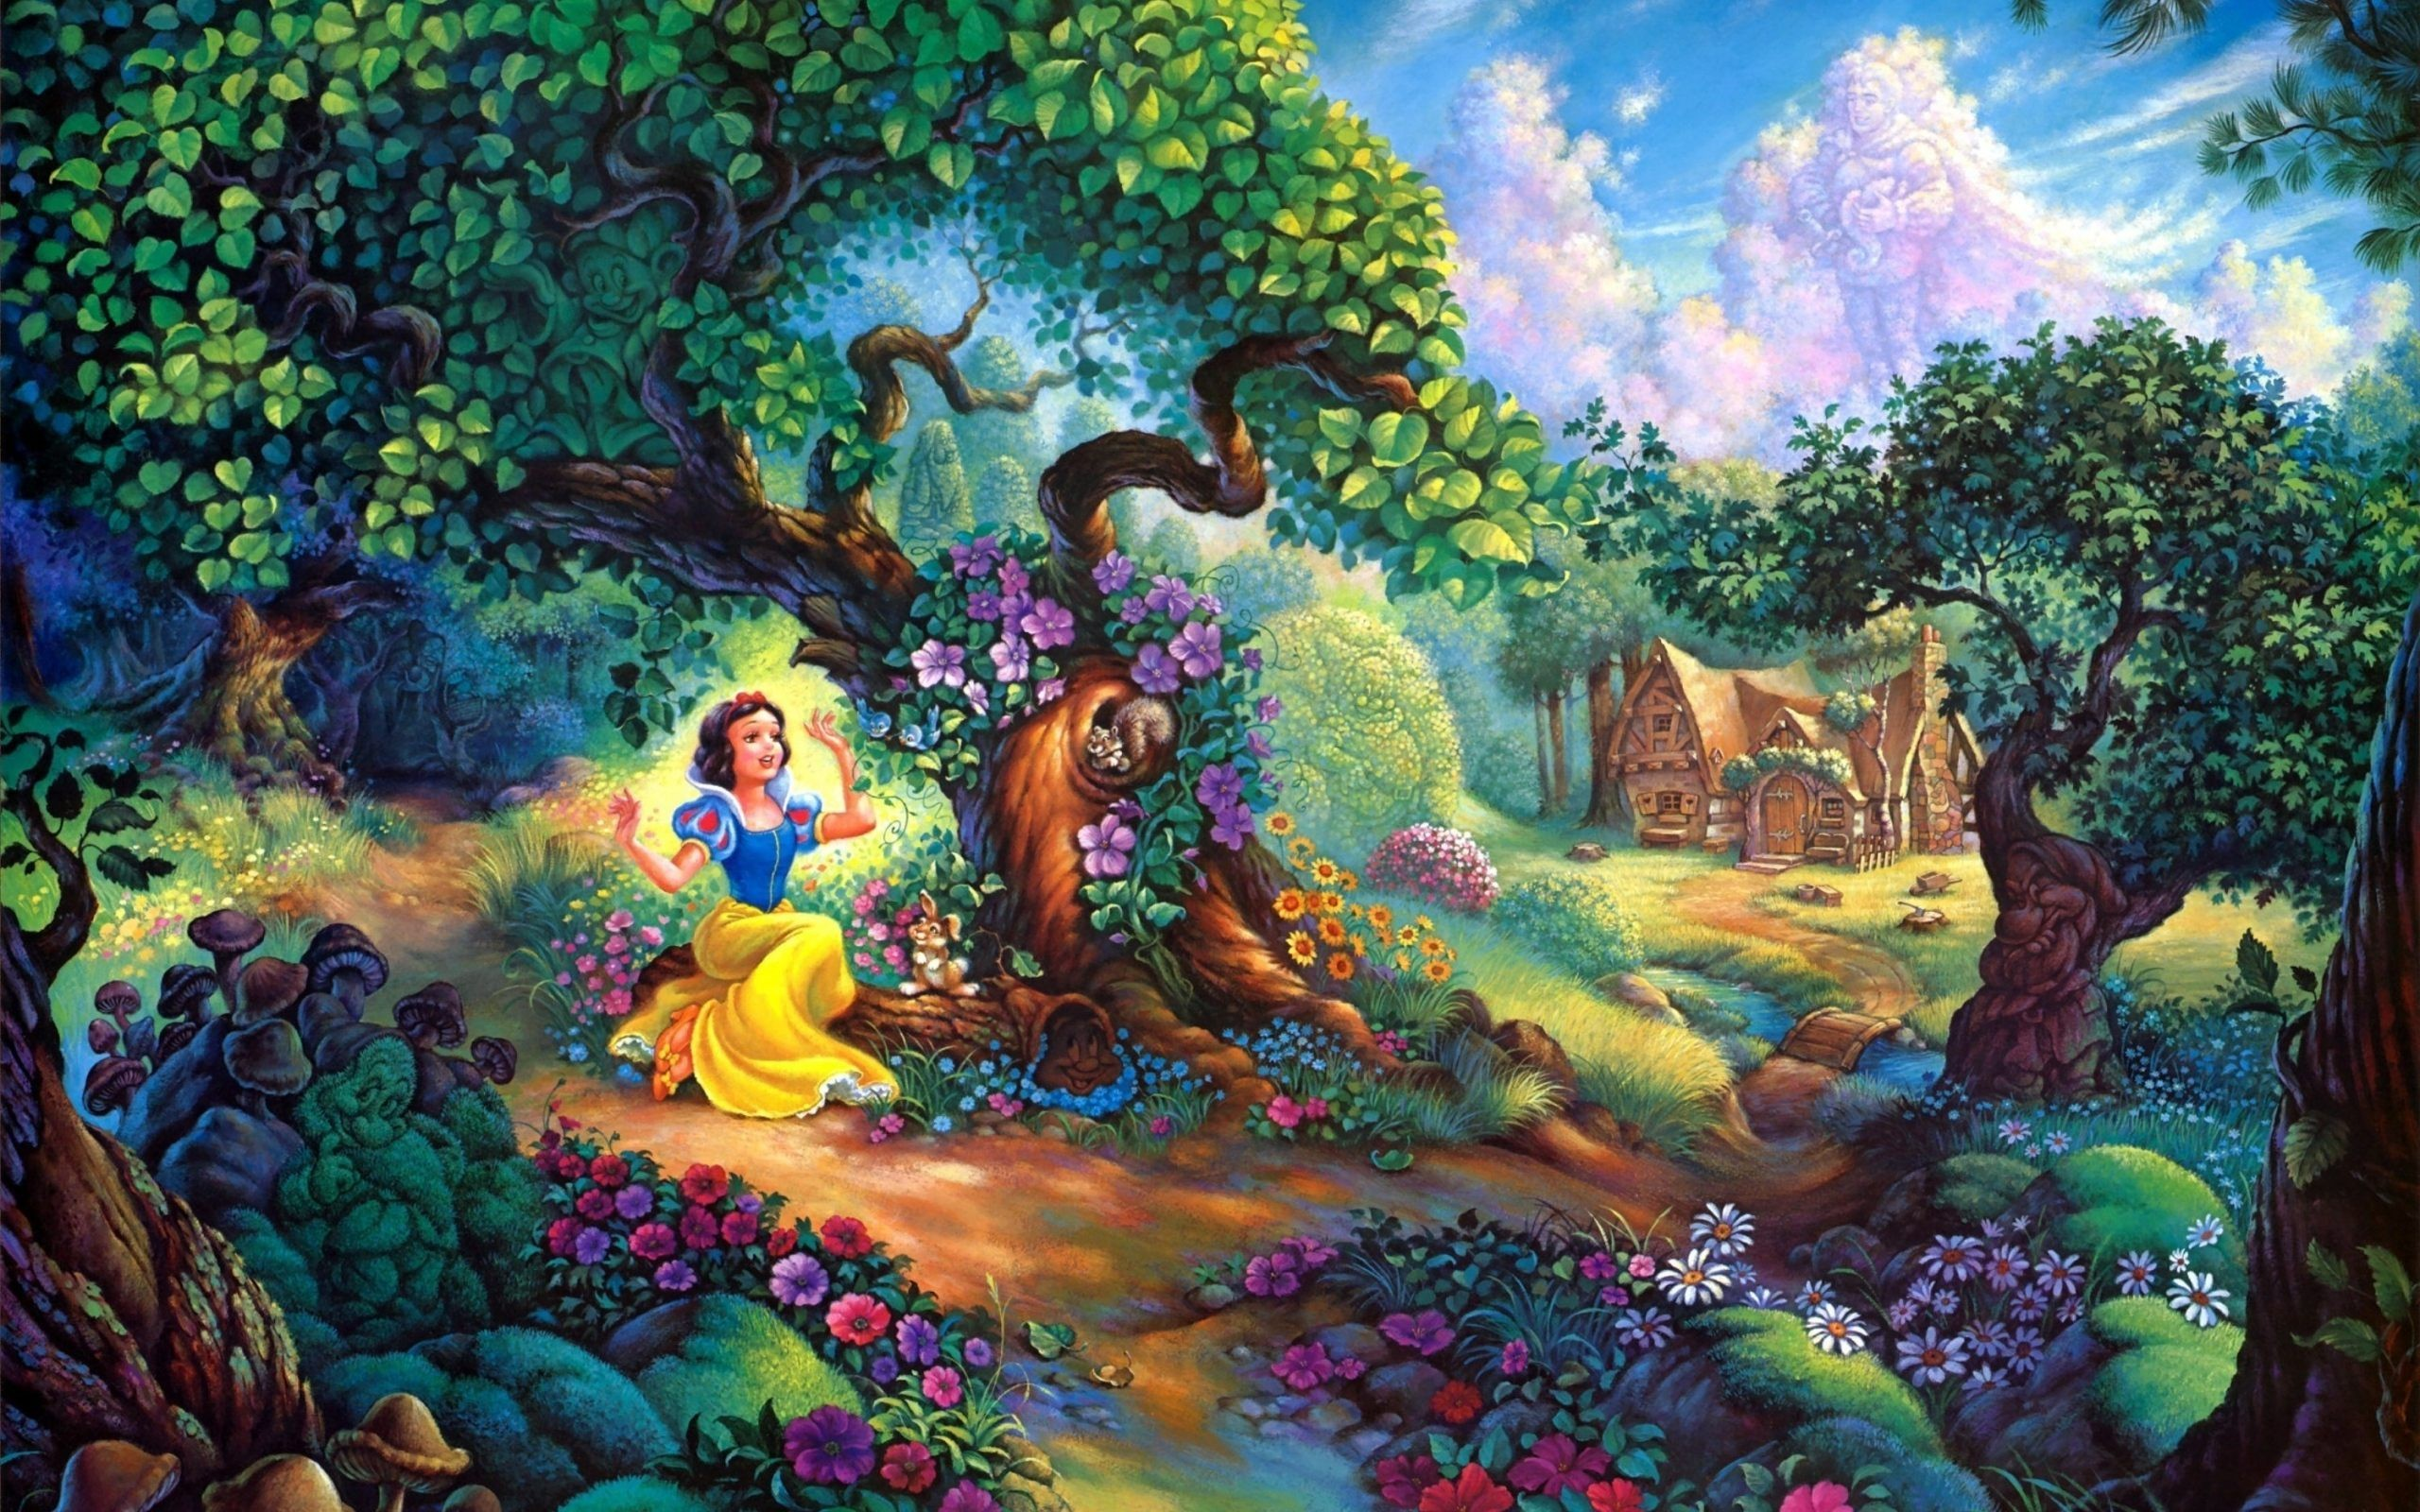 64 Disney wallpapers Download free amazing full HD wallpapers